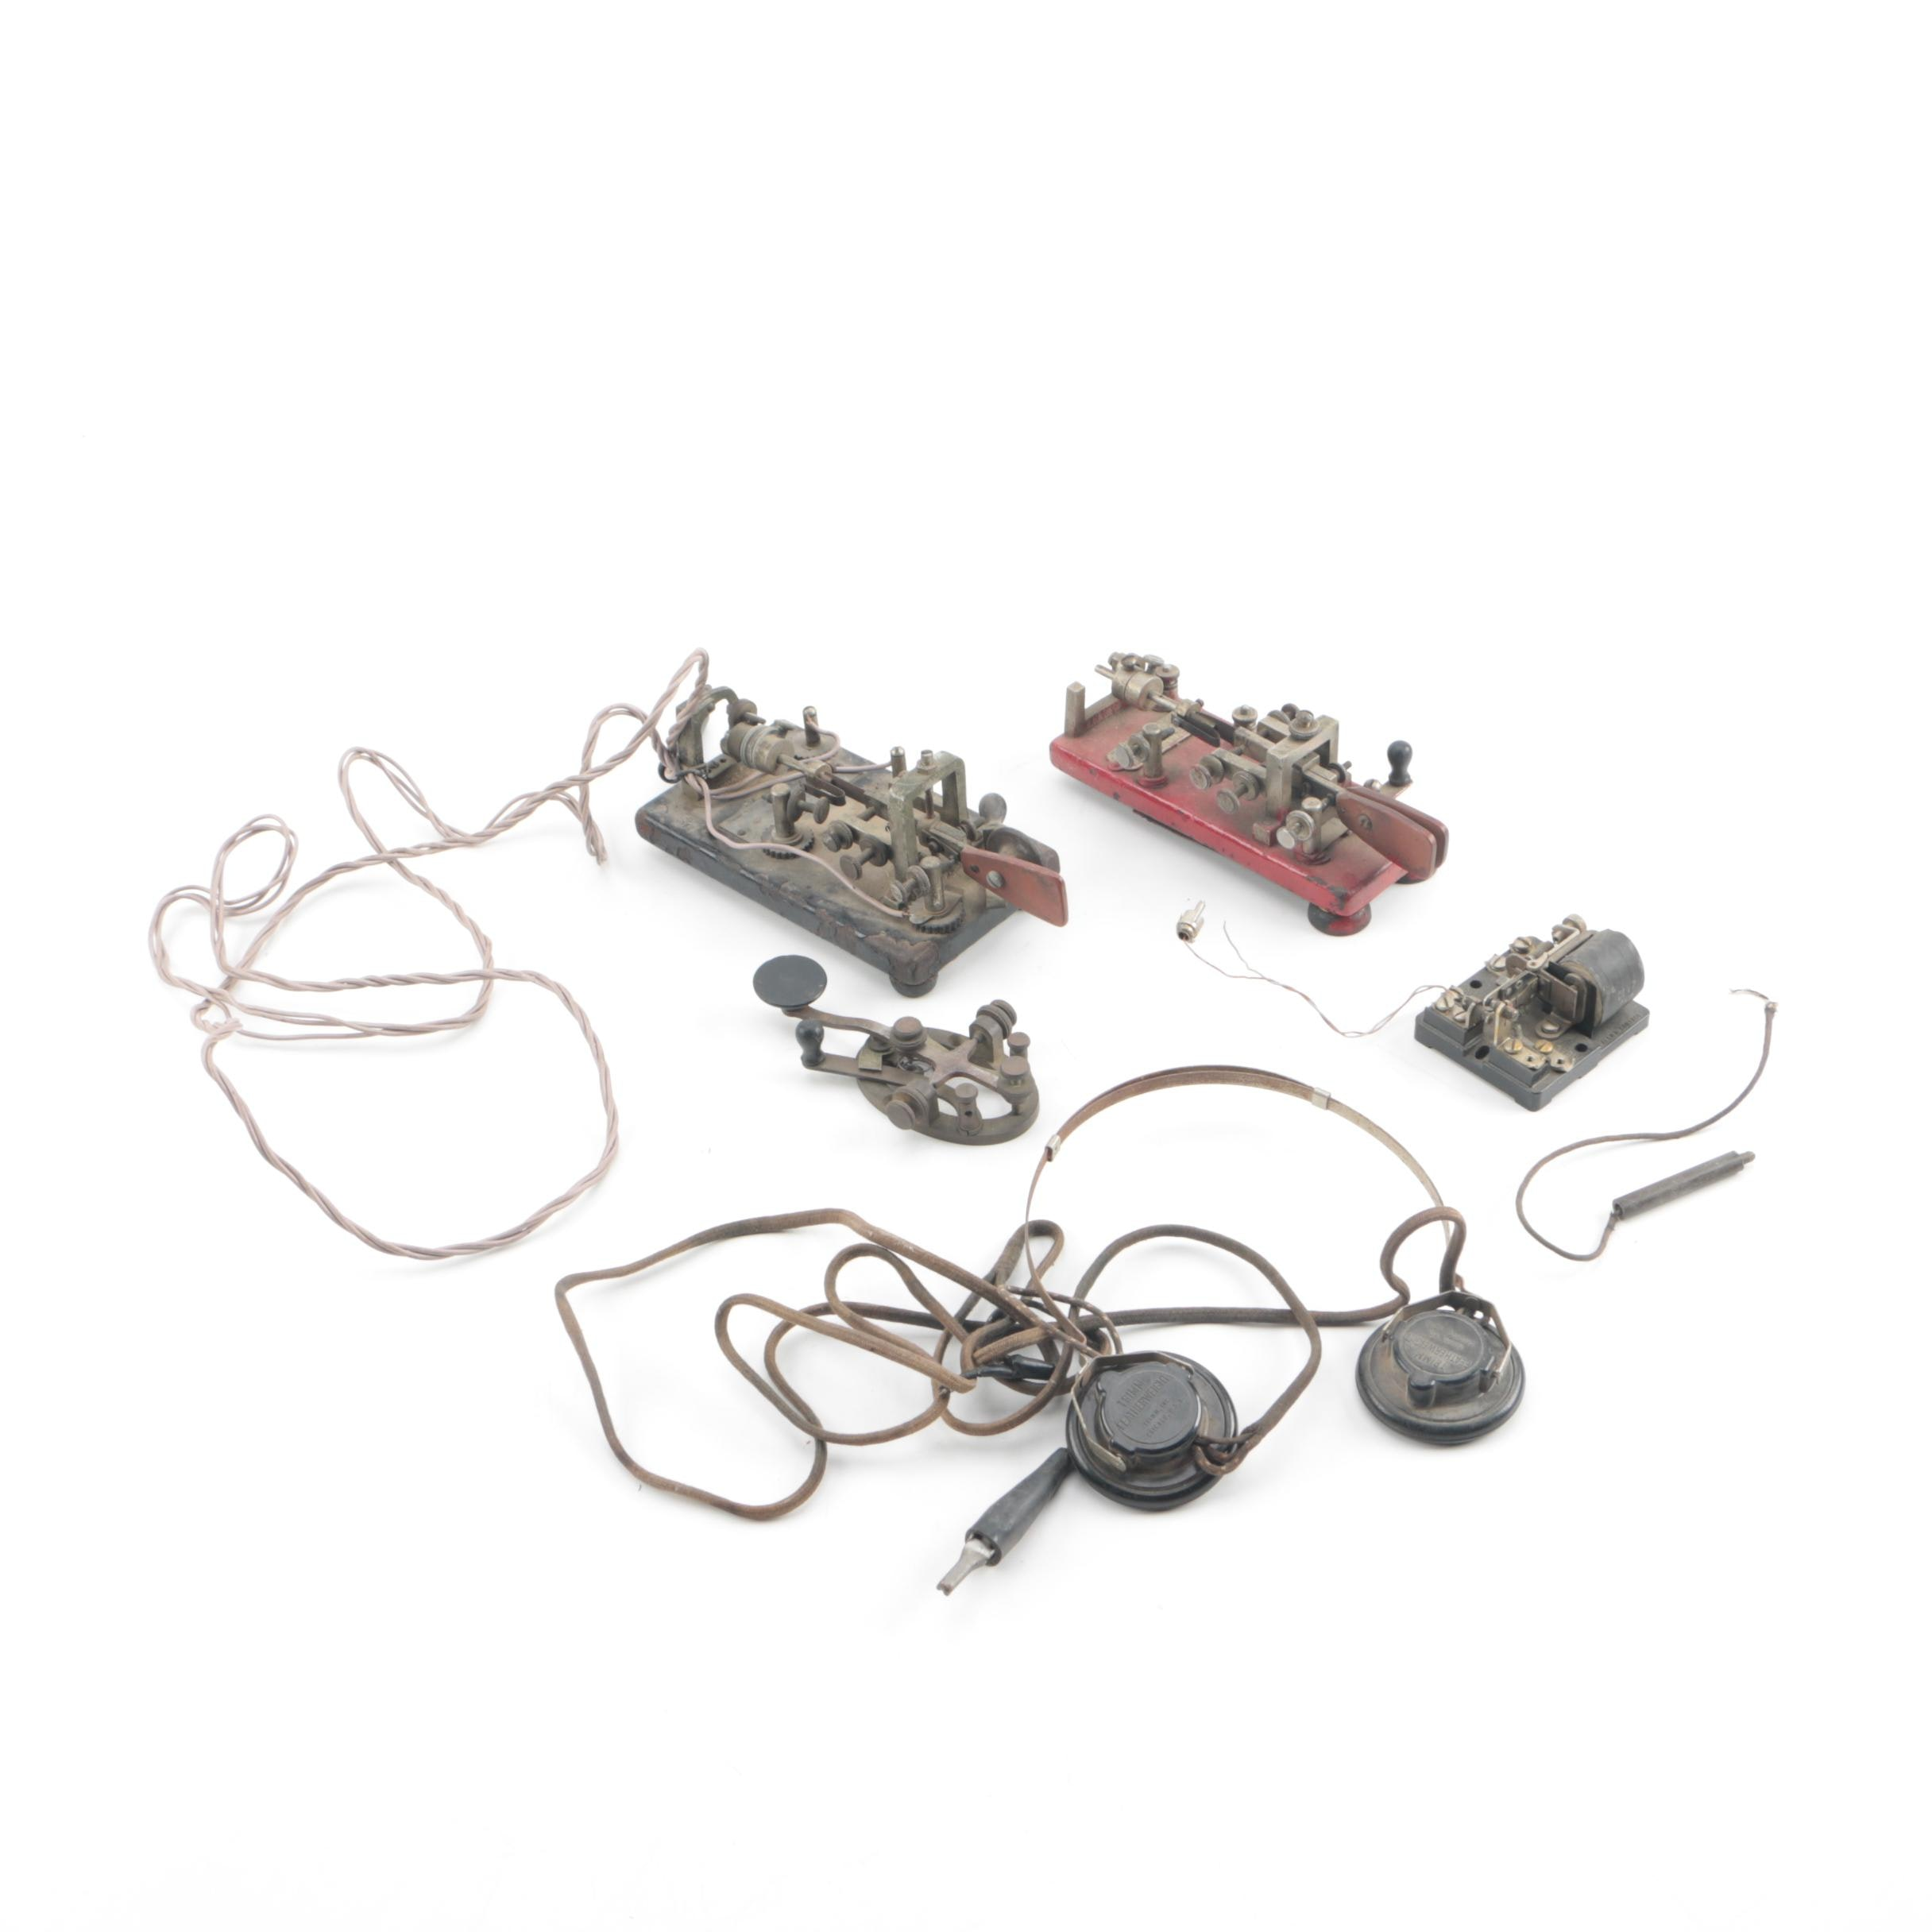 Antique Vibroplex and Other Telegraph Keys With Trimm Featherweight Headphones